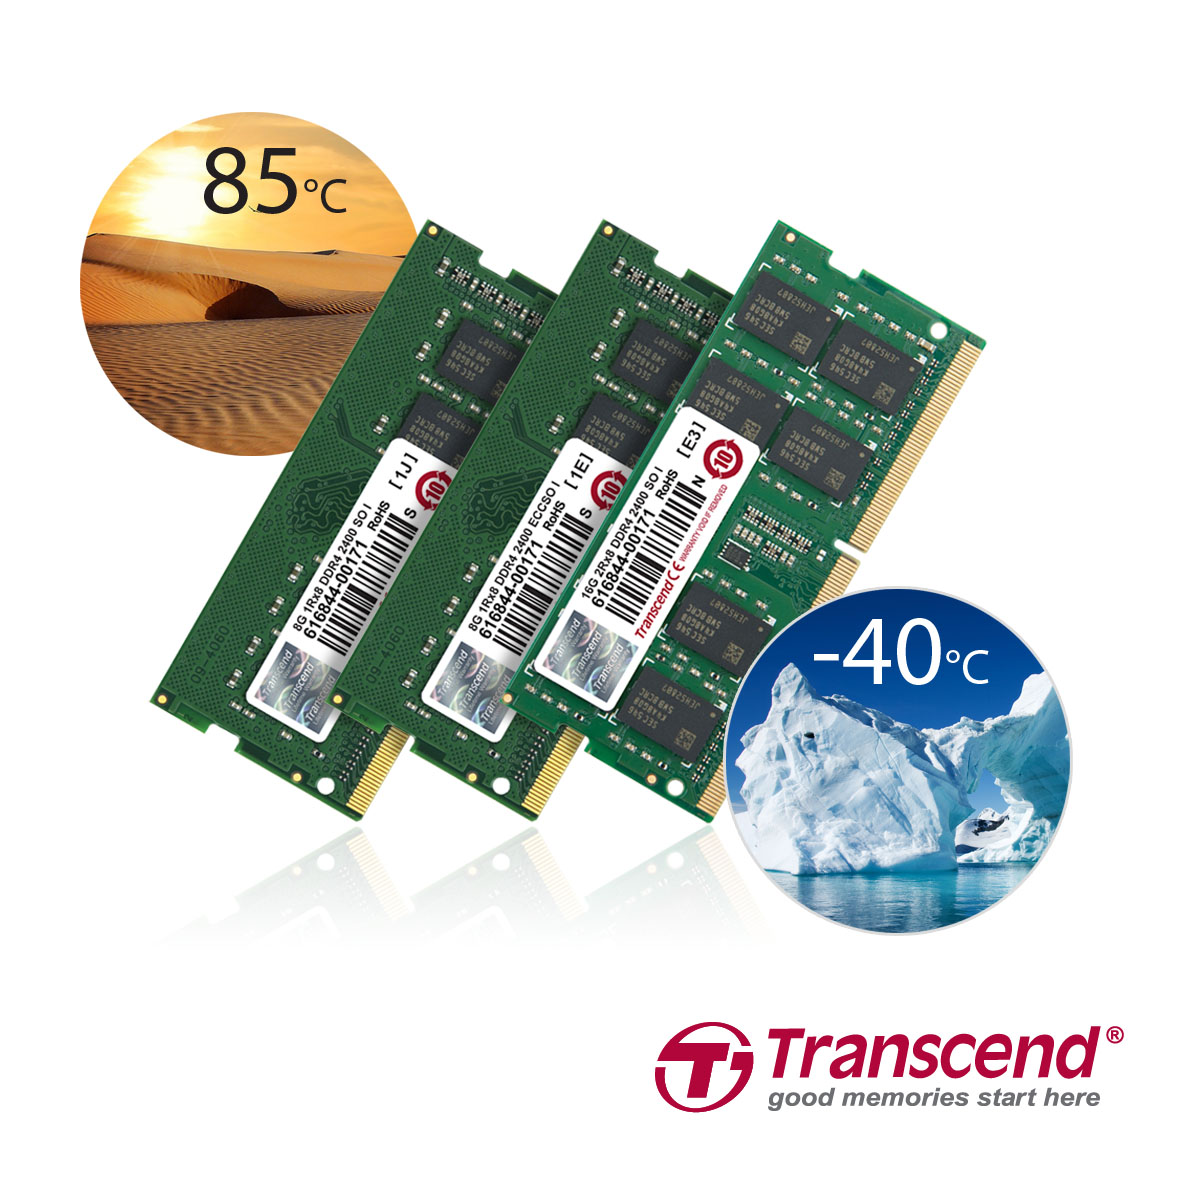 Transcend DDR4 Industrial-Grade Wide Temperature Memory Modules